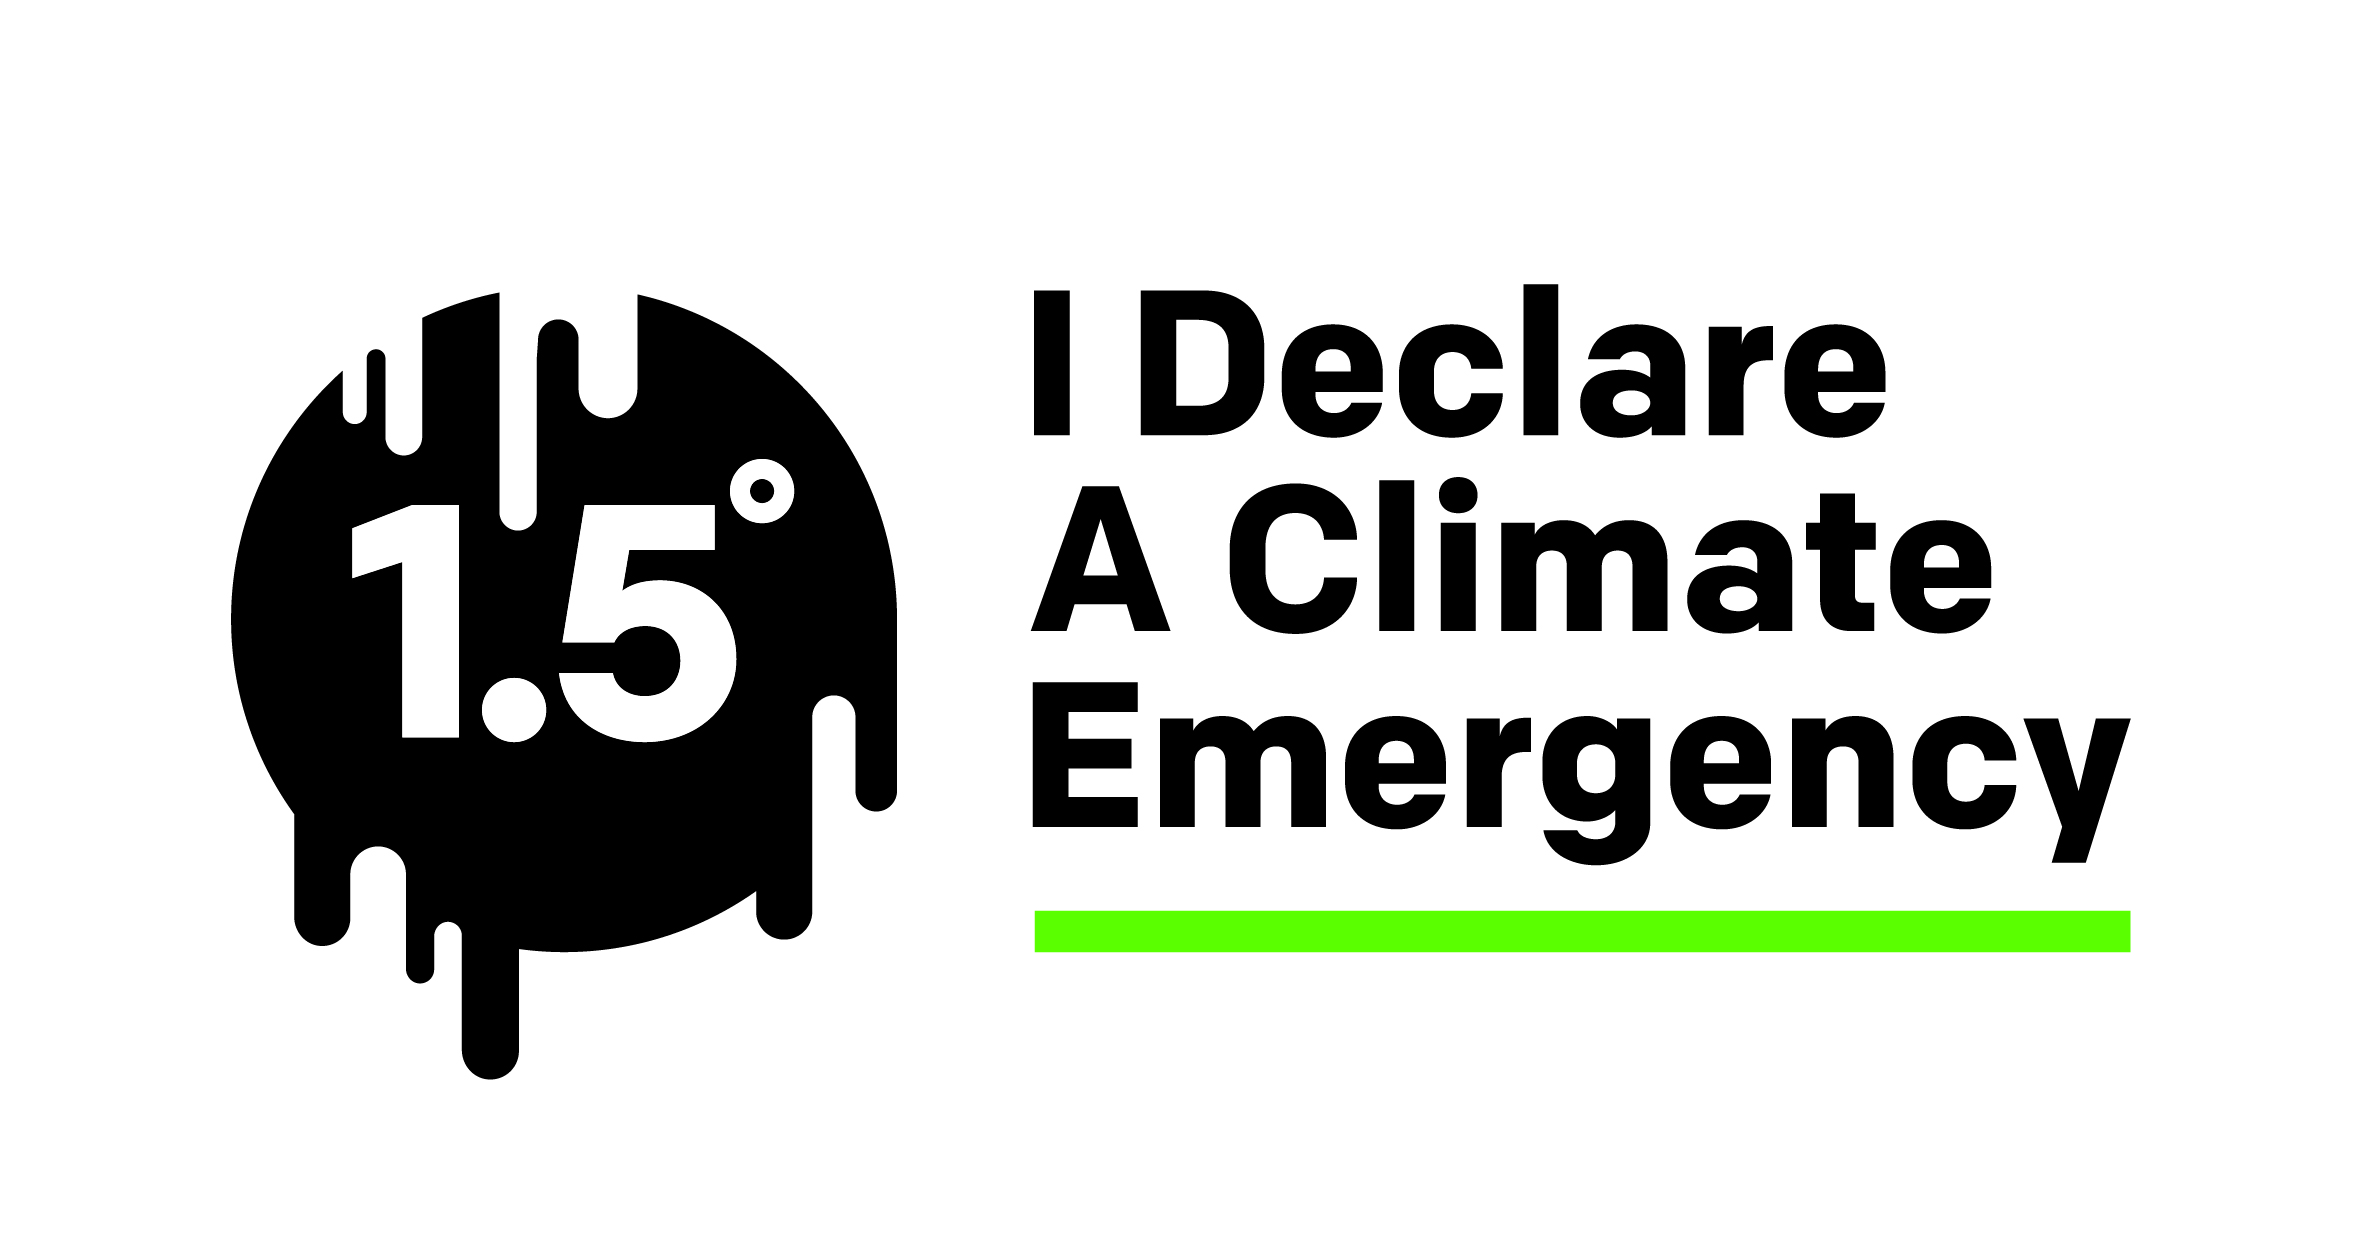 The-Digital-Ripple-declare-a-climate-emergency